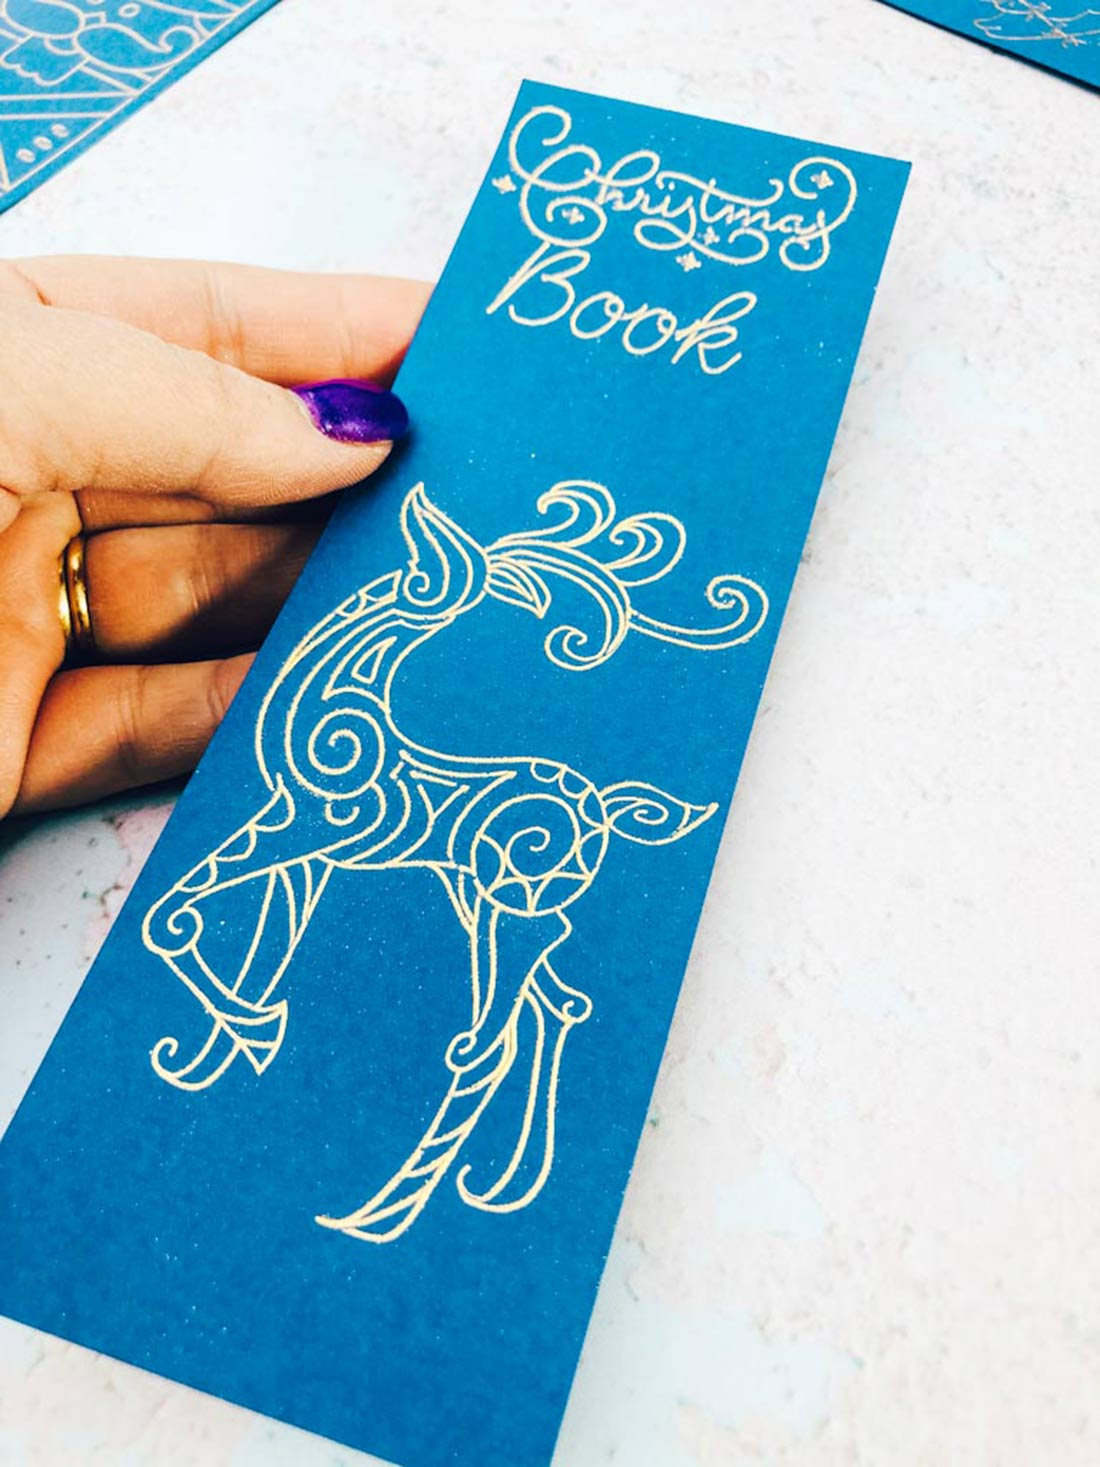 Bookmark made with Cricut Foil